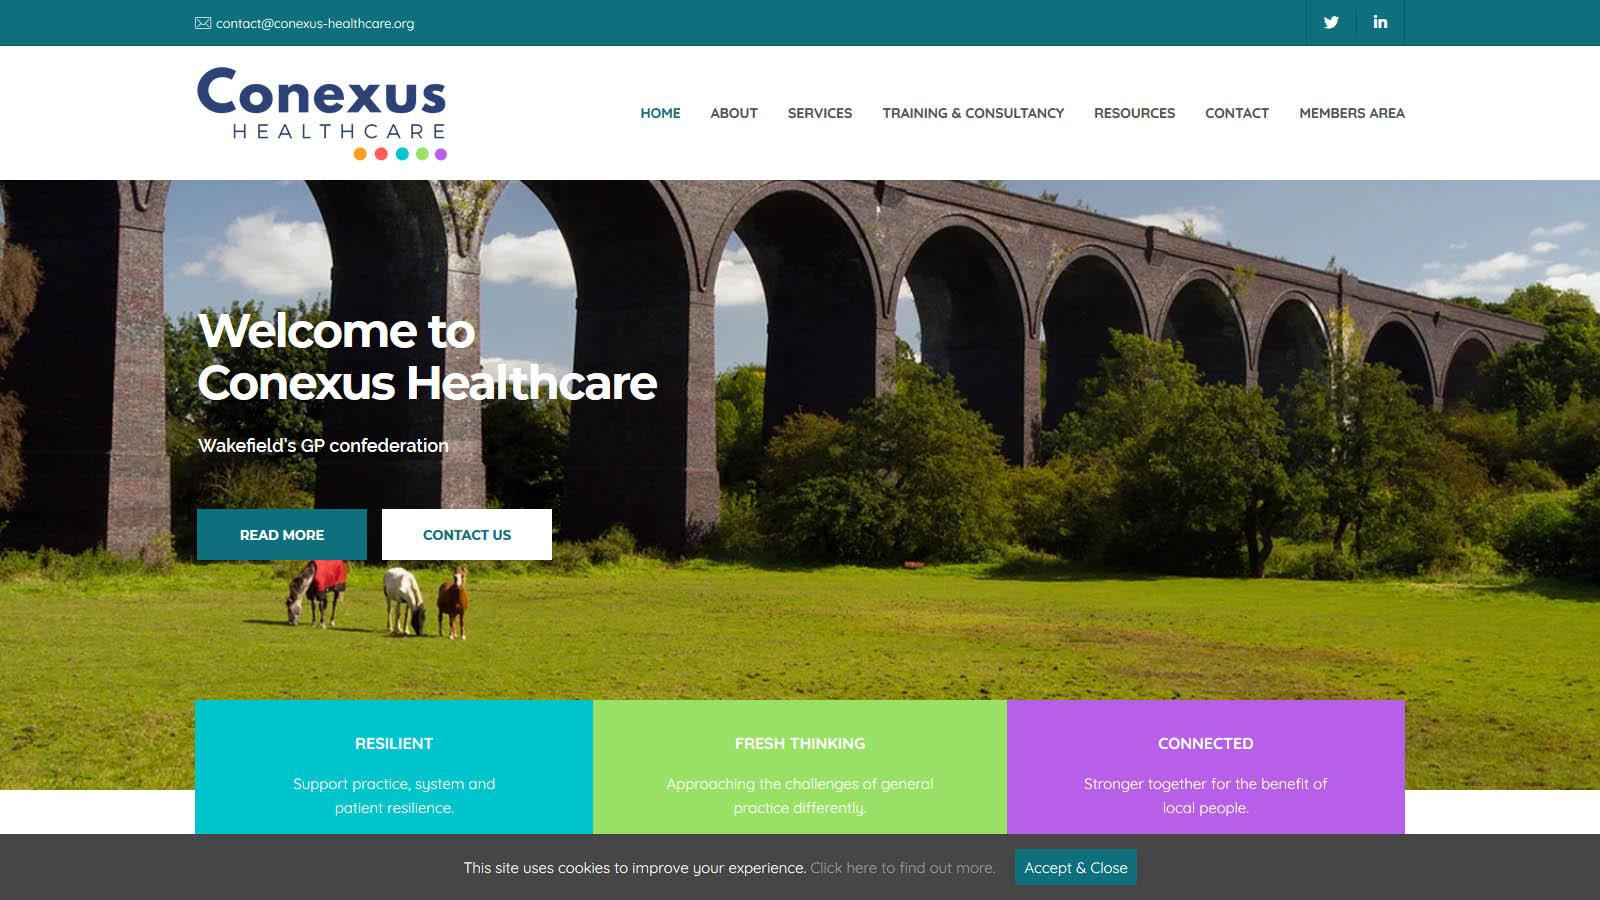 A commercial website for a healthcare company